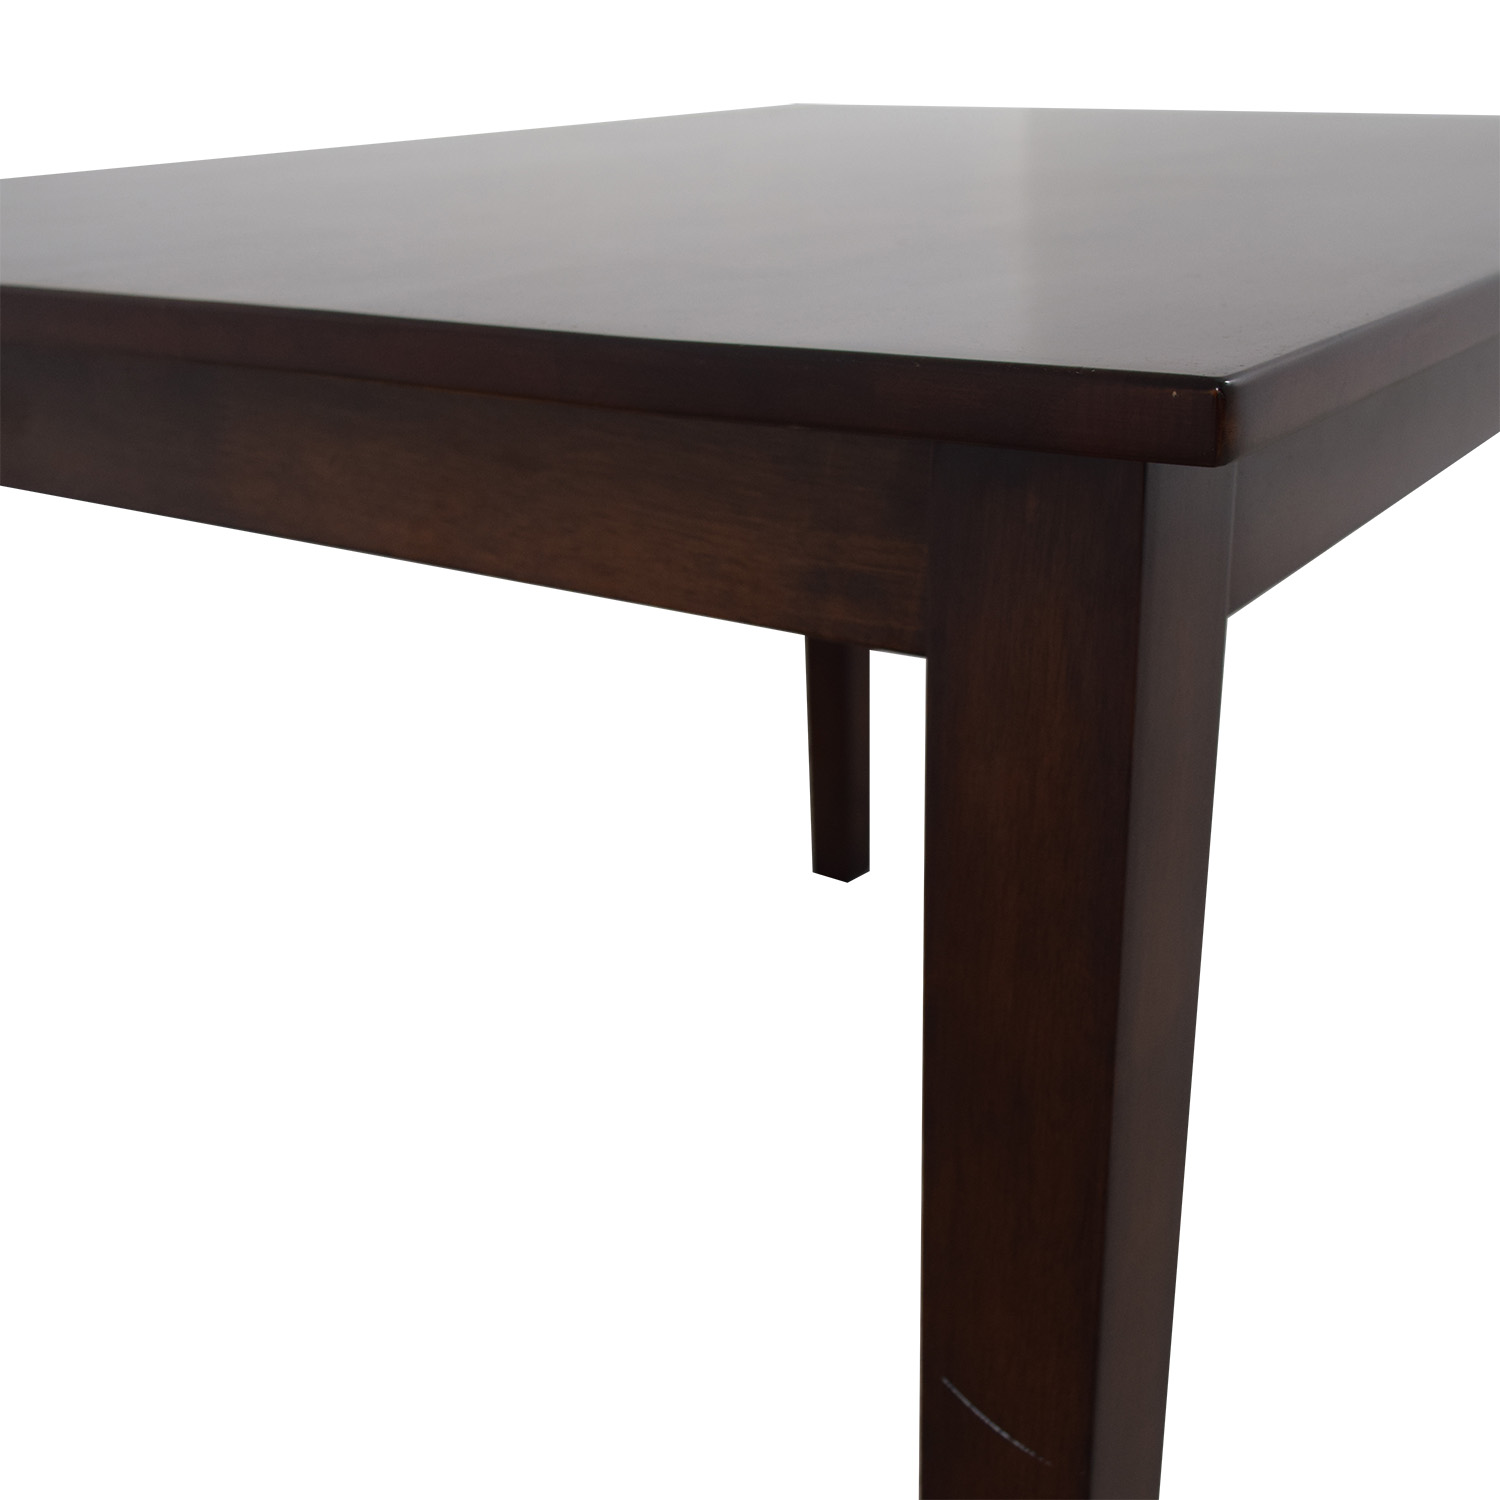 44% OFF   Star Furniture Star Furniture Dining Table / Tables Part 59